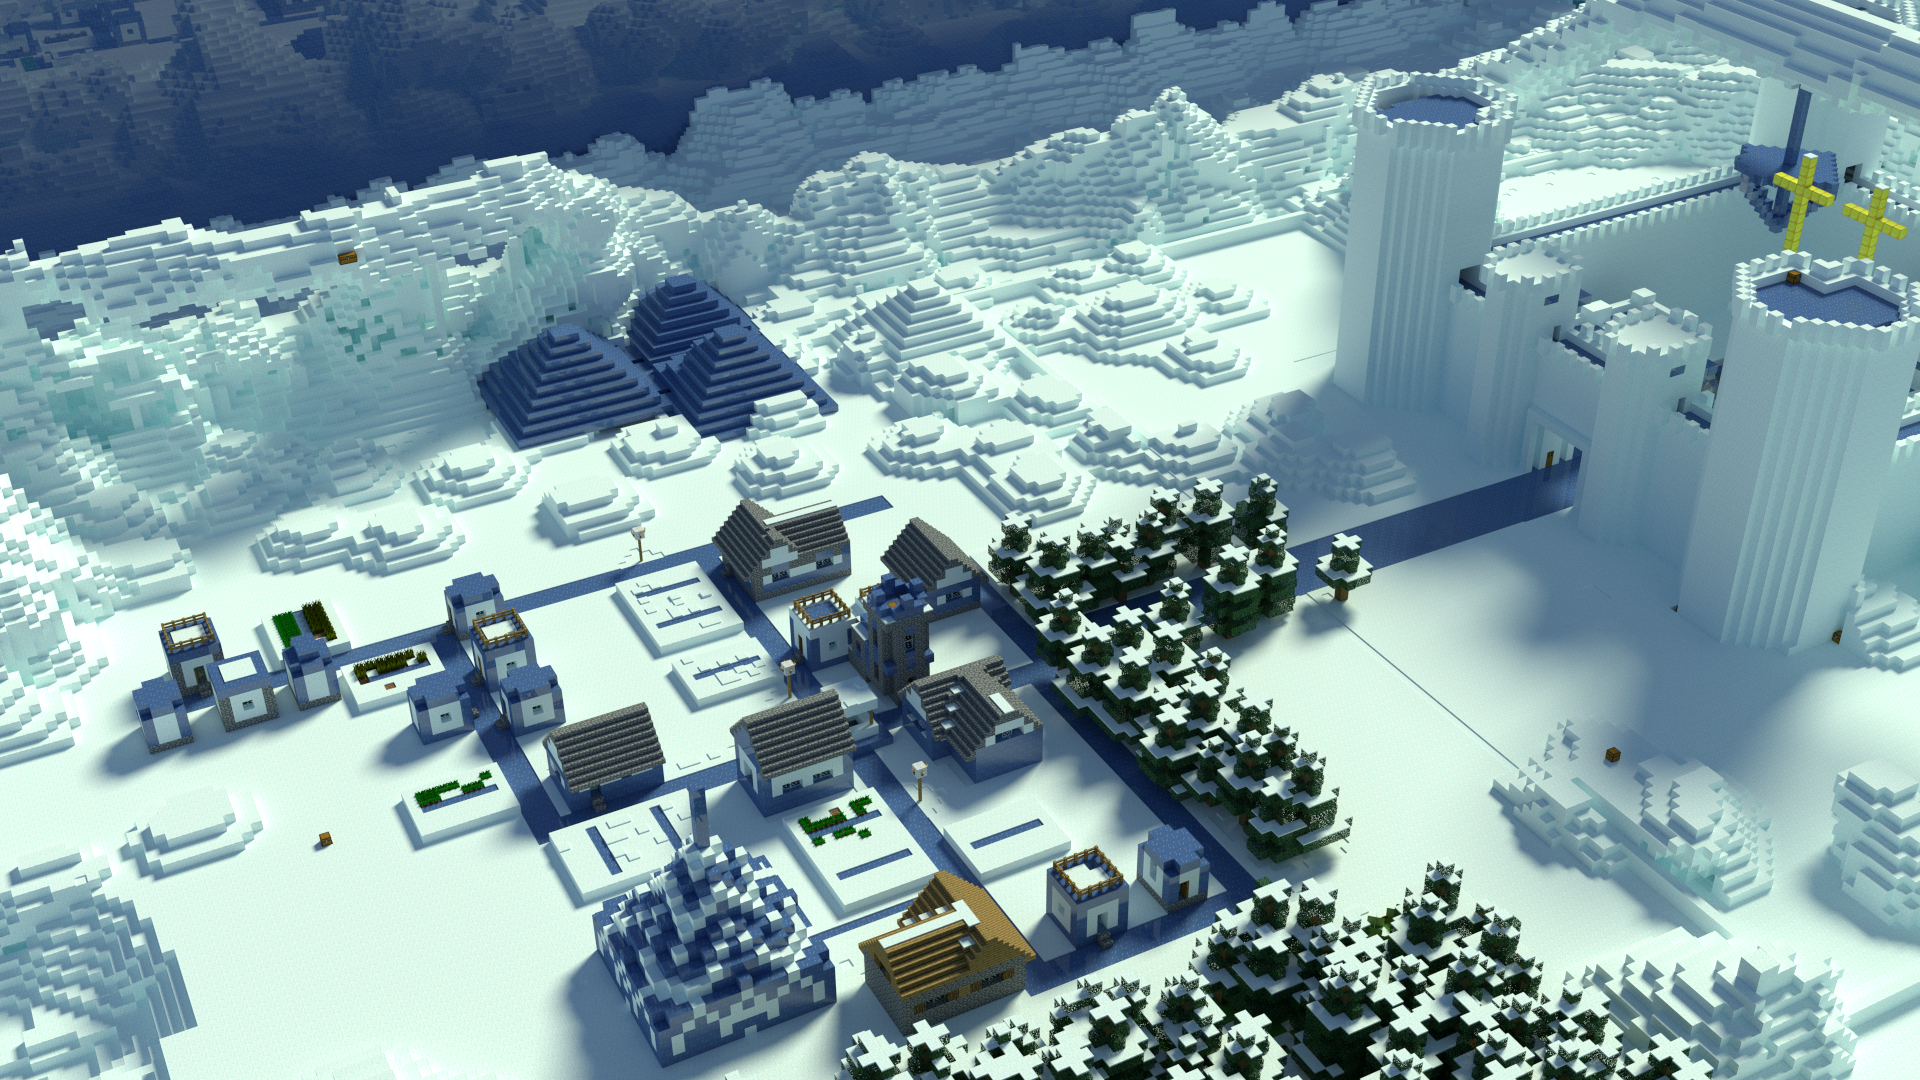 Good Wallpaper Minecraft Winter - a991317a8bc0b65a40a599b84dc49767  Perfect Image Reference_587574.png